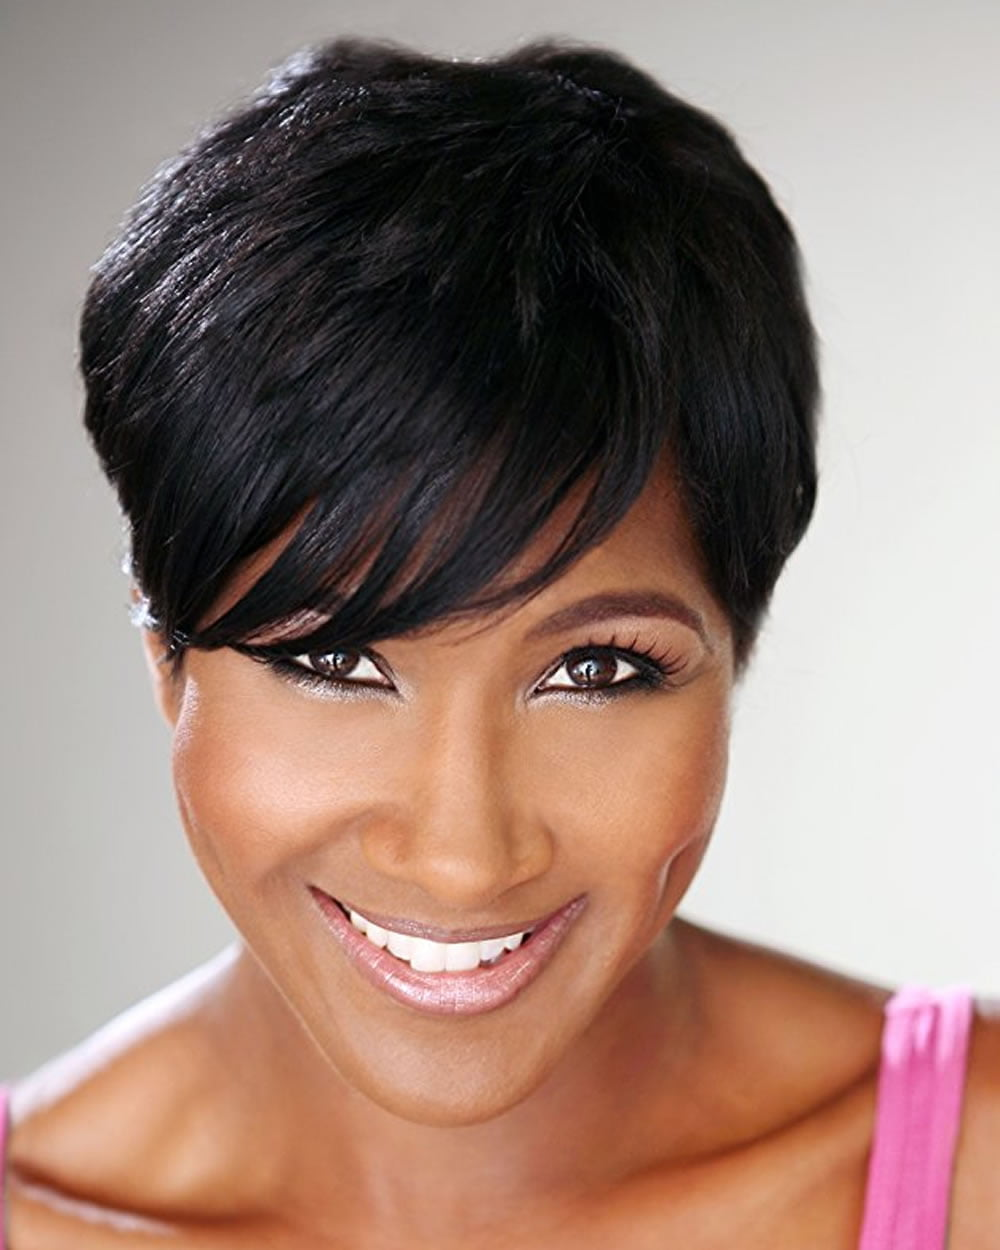 Short Pixie Black Hairstyles 2018 – Latest Haircut Ideas + Images ...